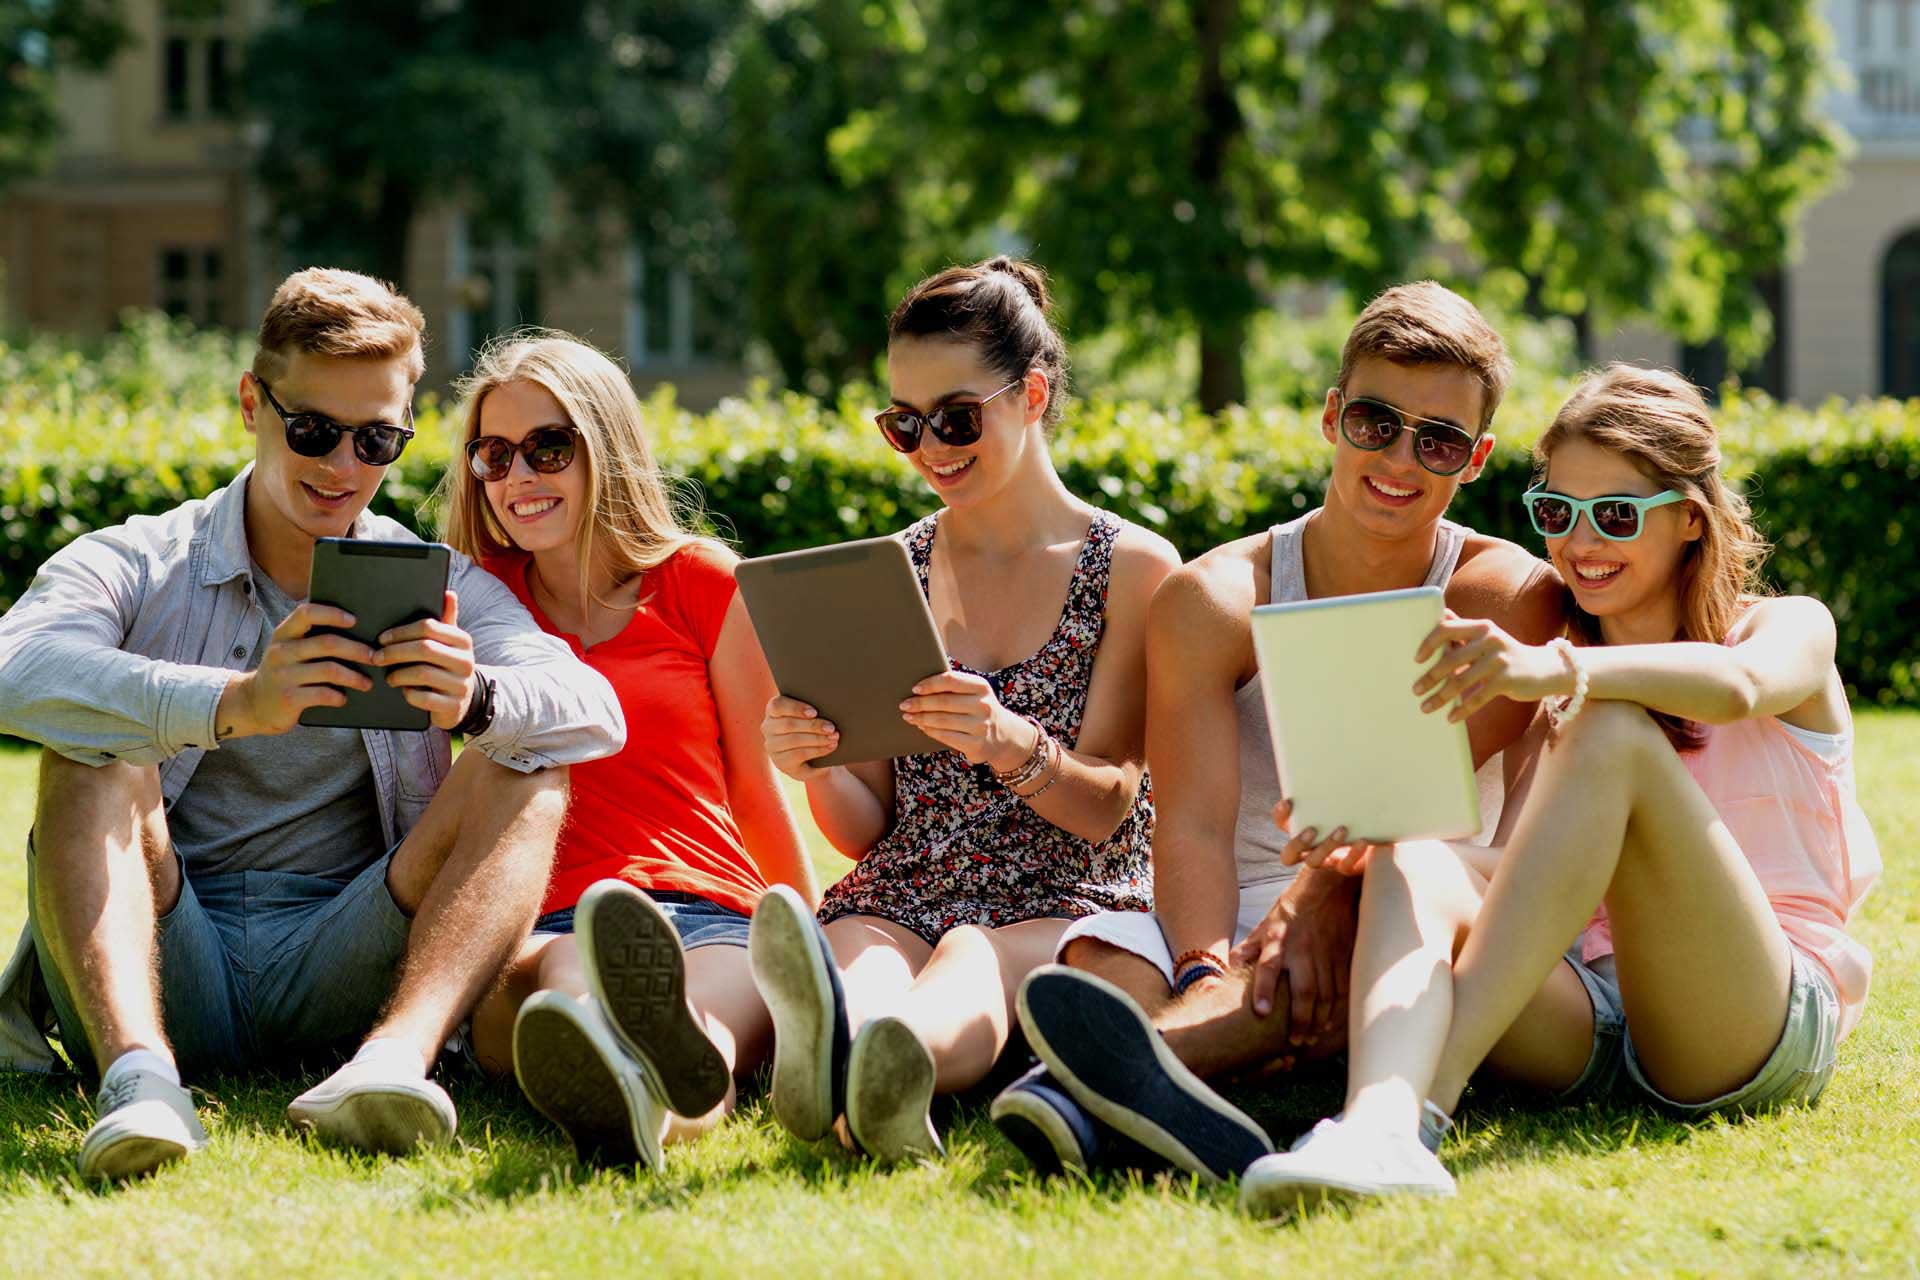 group of people on the grass looking at their mobile devices